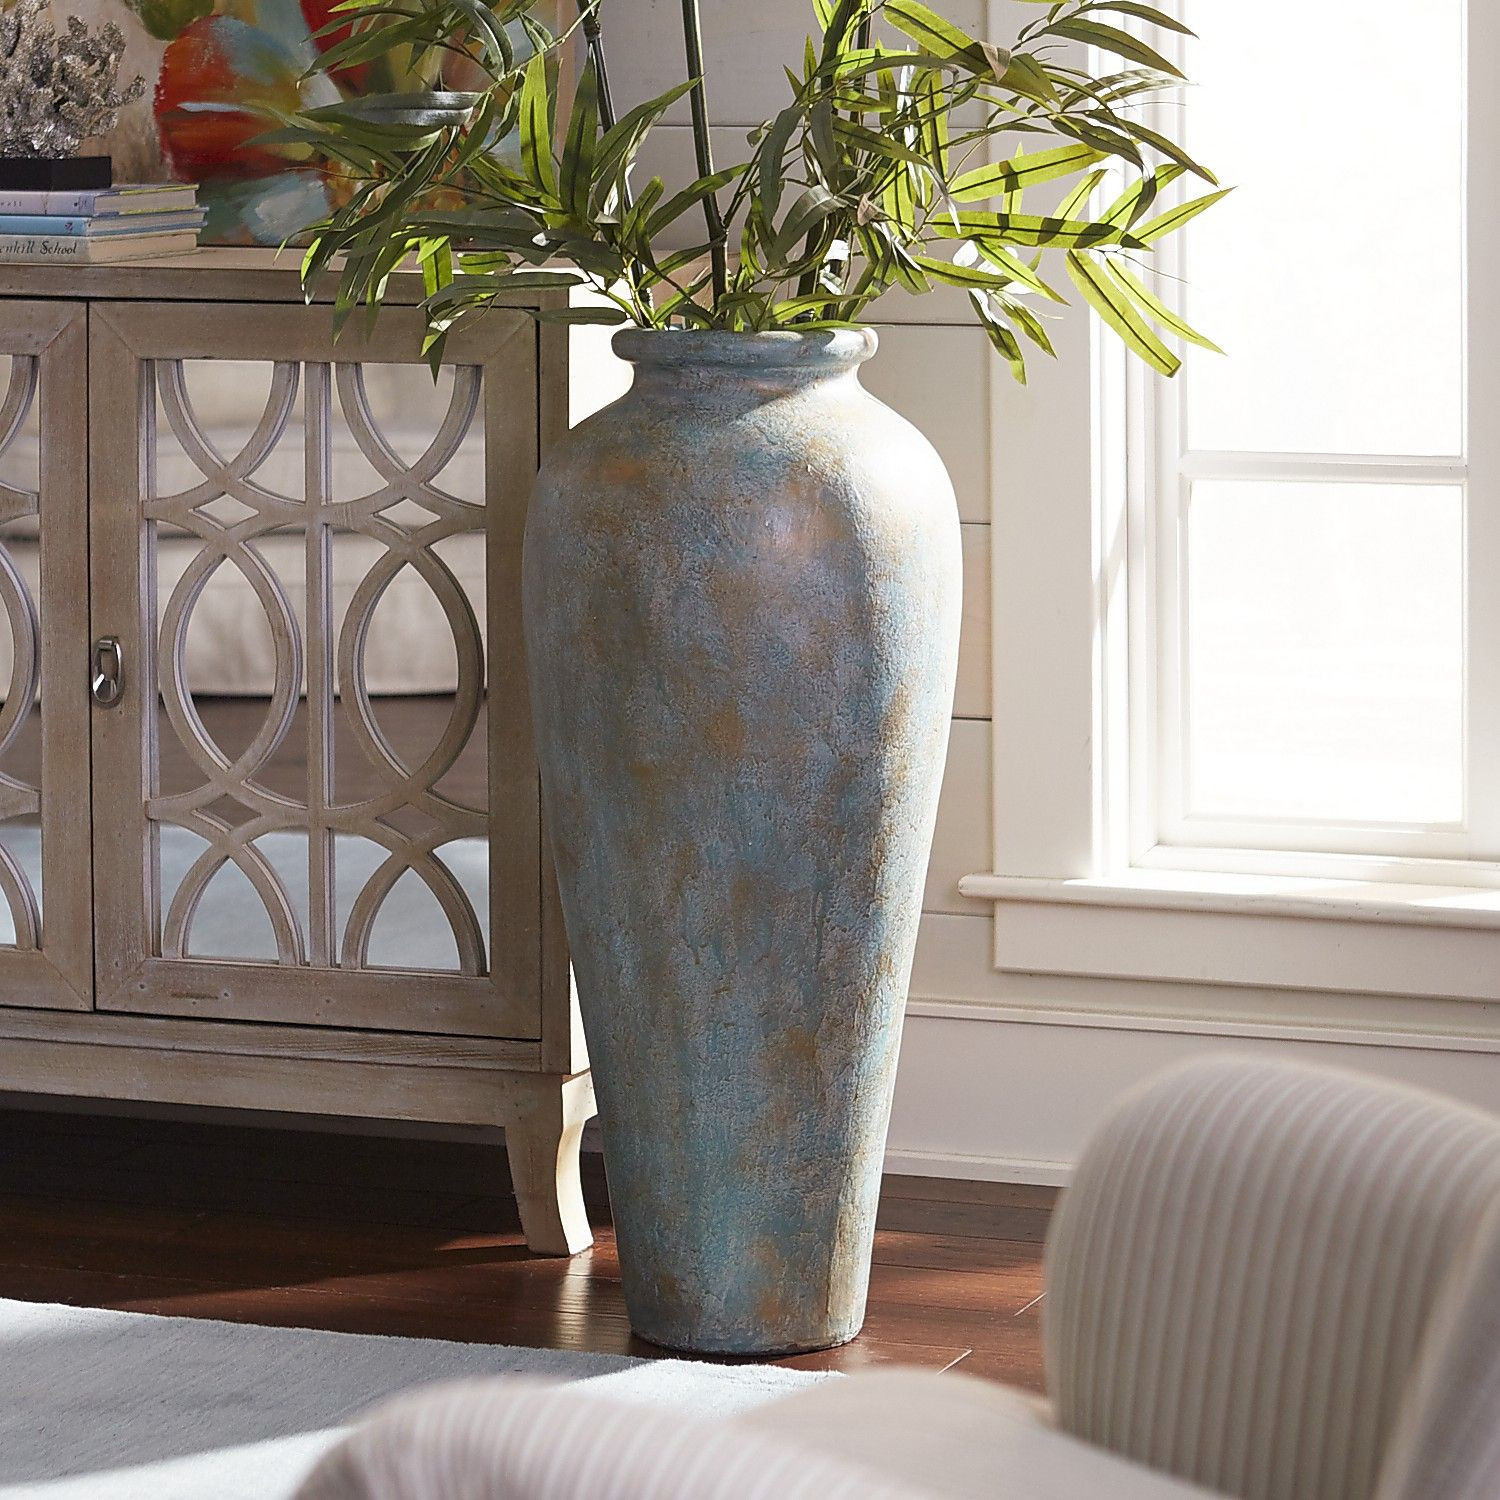 Terracotta Vase Of Blue Green Patina Urn Floor Vase Products Pinterest Flooring Pertaining to Blue Green Patina Urn Floor Vase